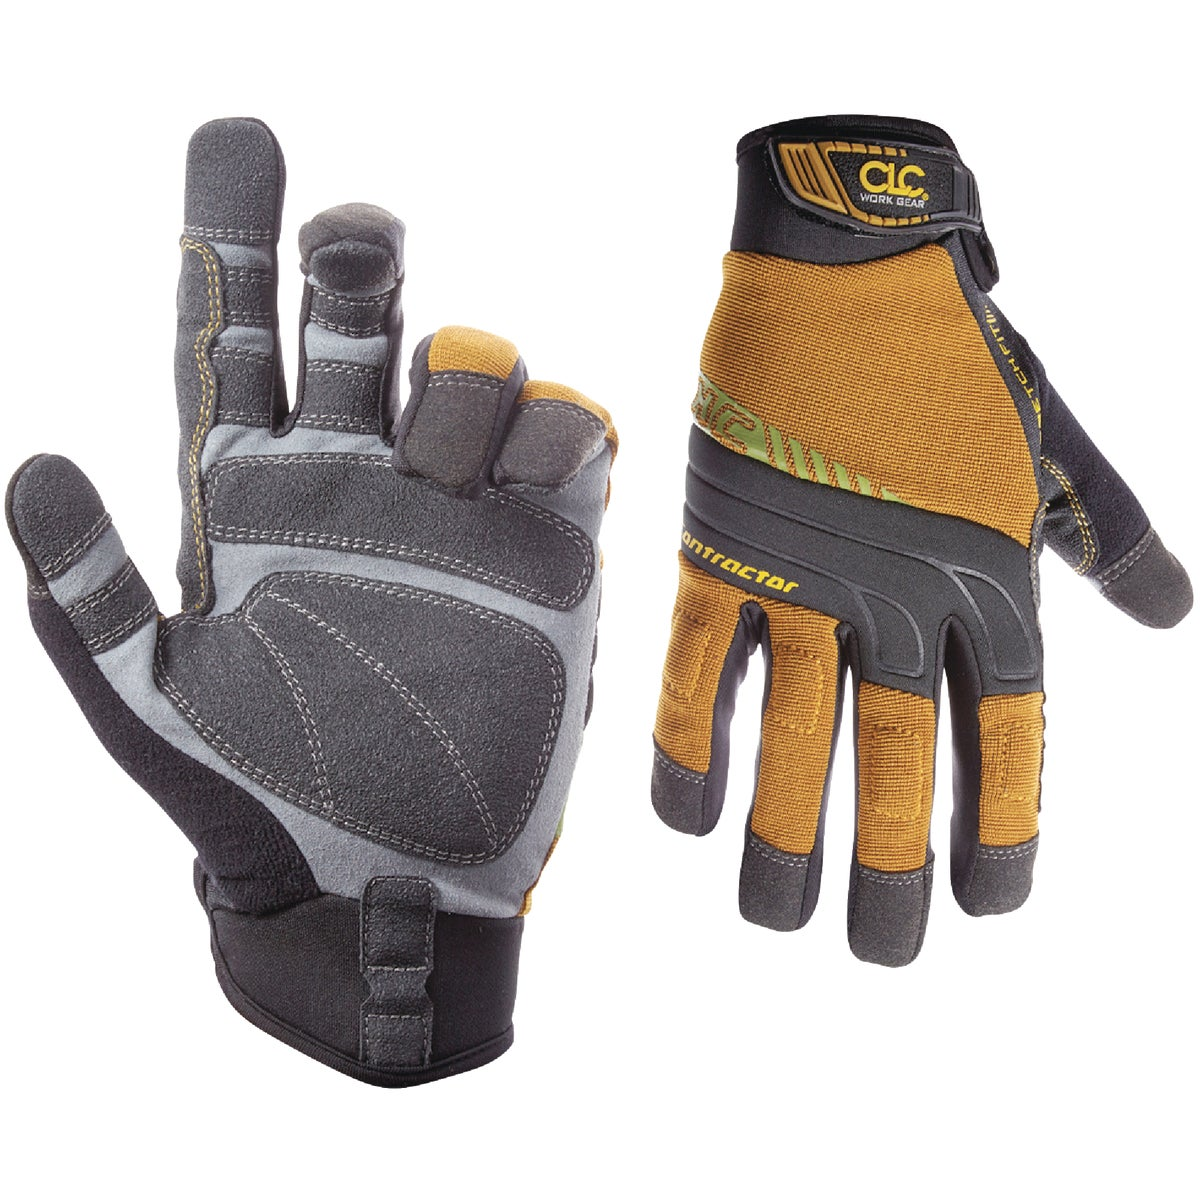 LRG CONTRACTOR GLOVE - 160L by Custom Leathercraft